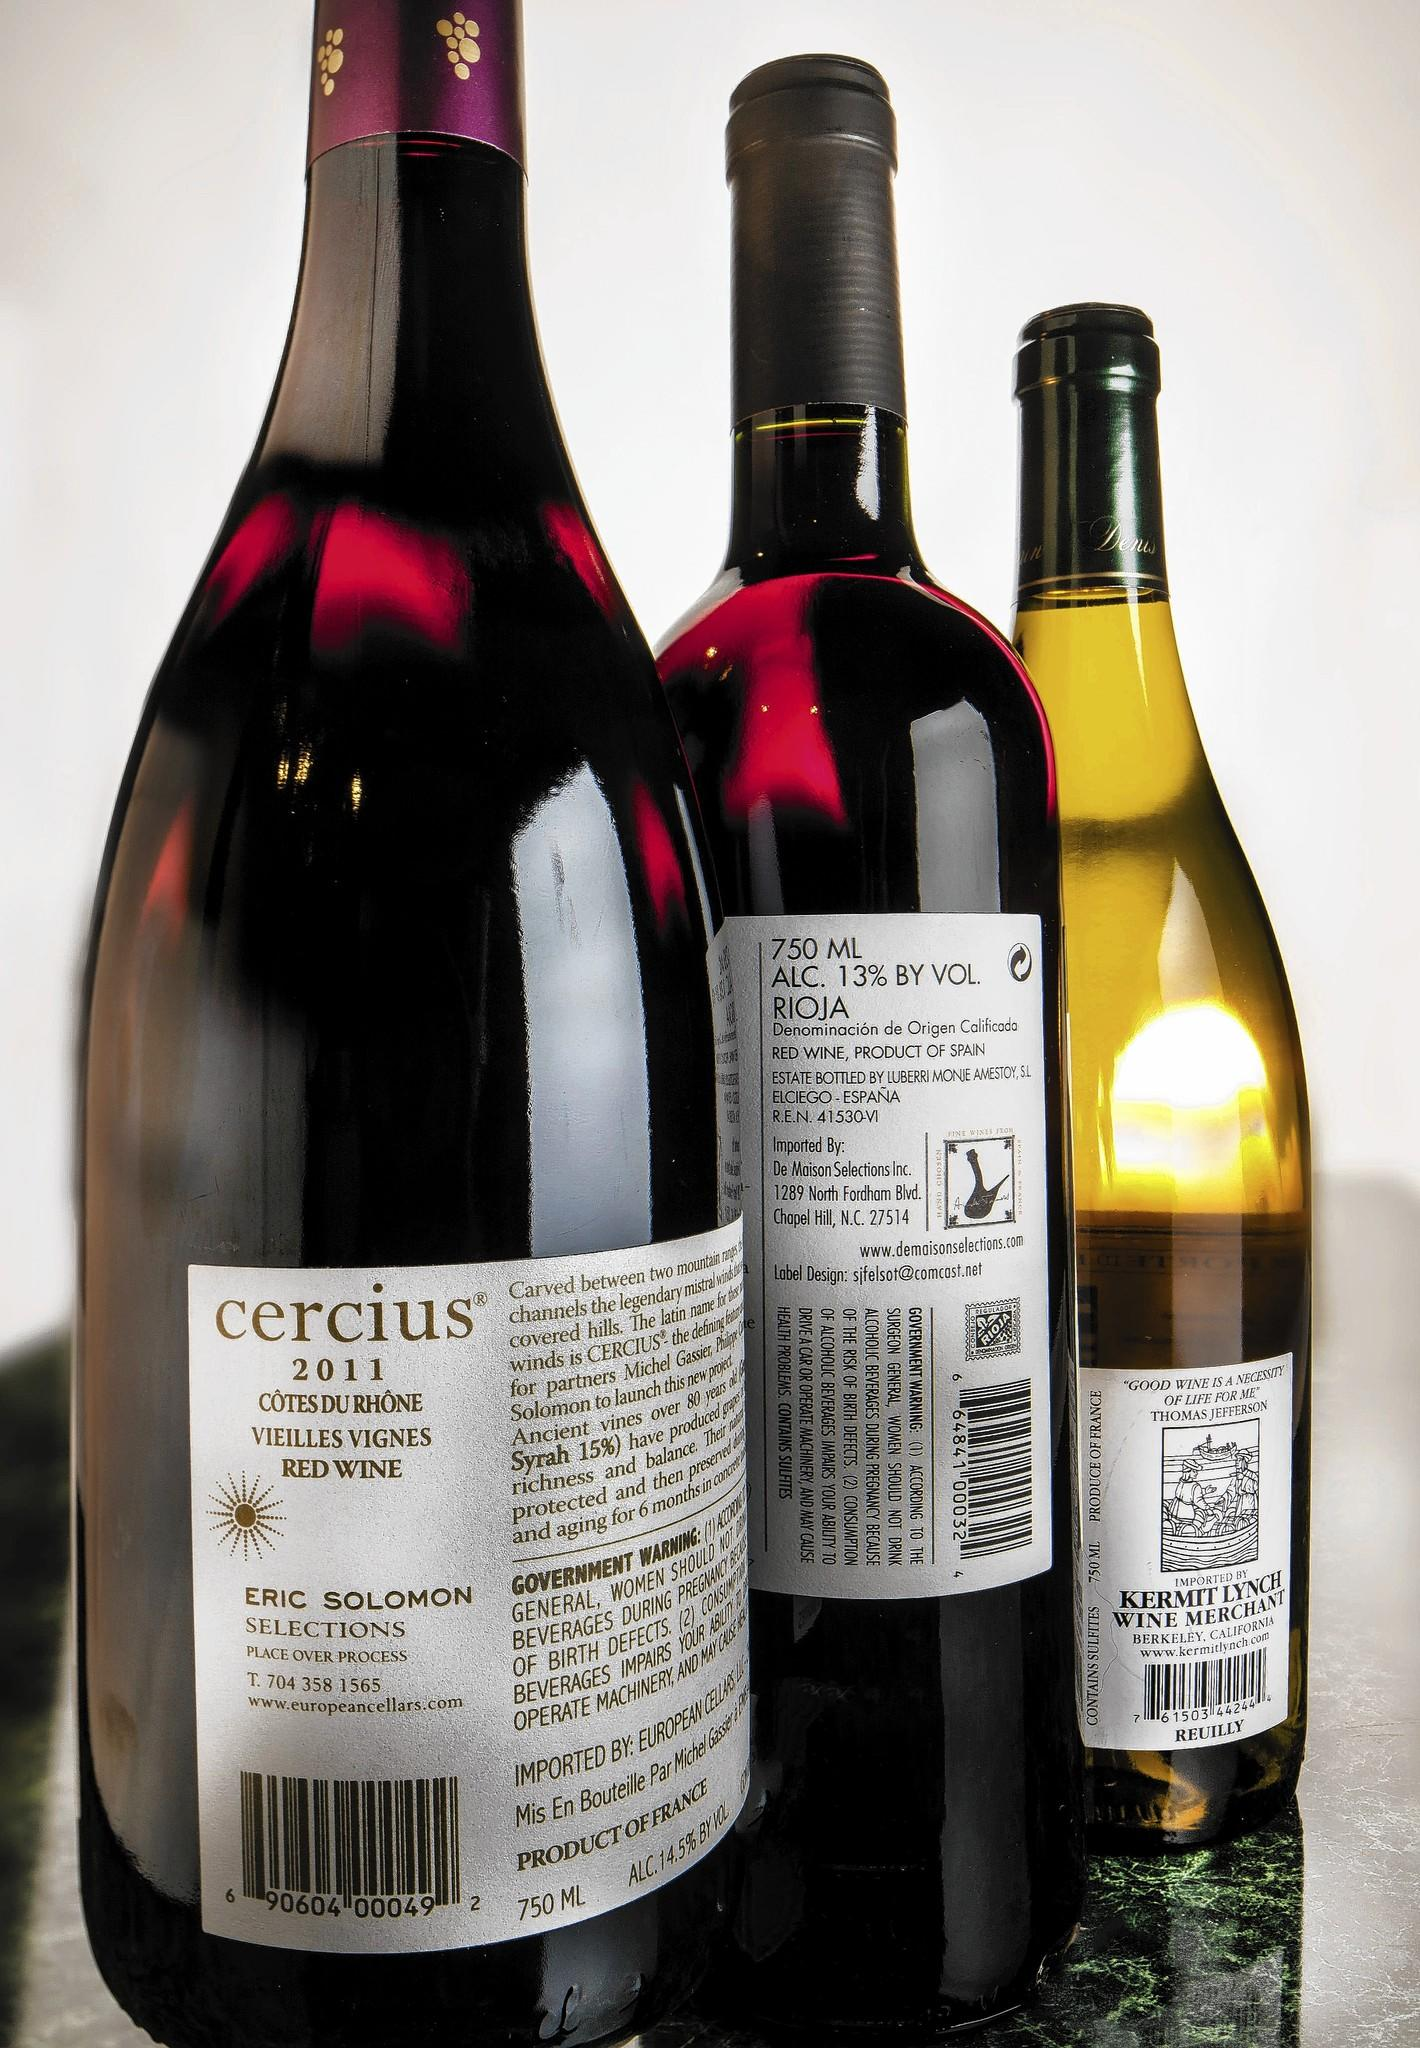 Labels on imported wines.